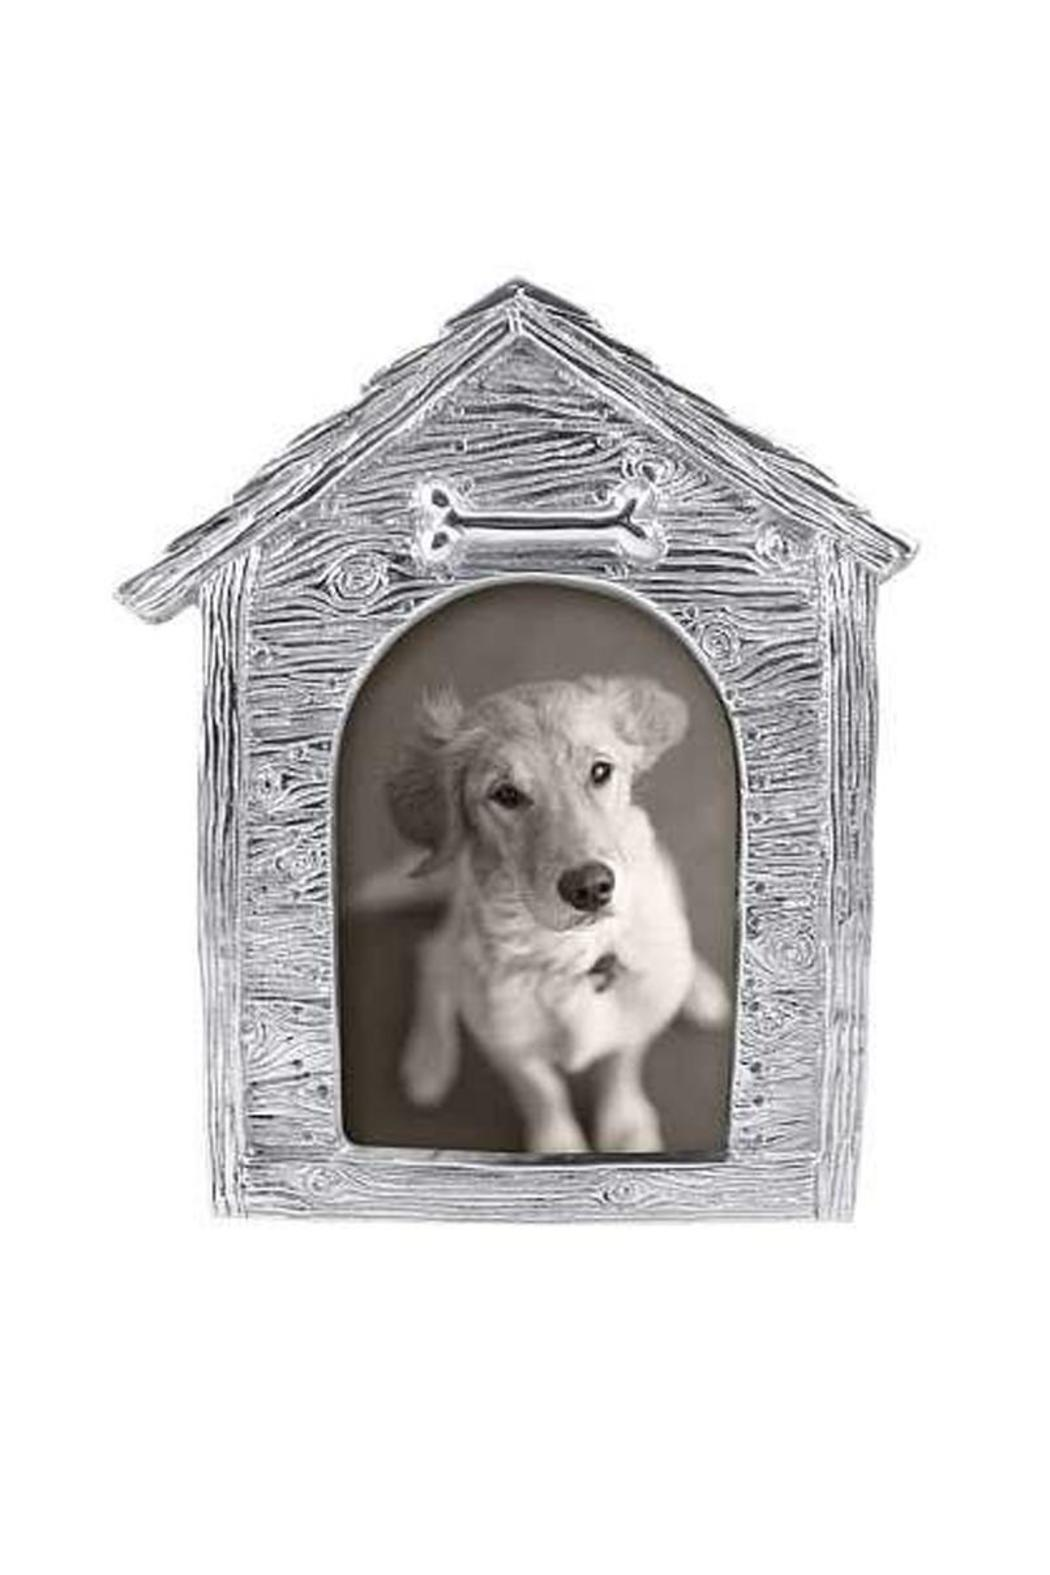 Mariposa Dog House Frame From Florida By Accents On Gifts - Dog-house-frame